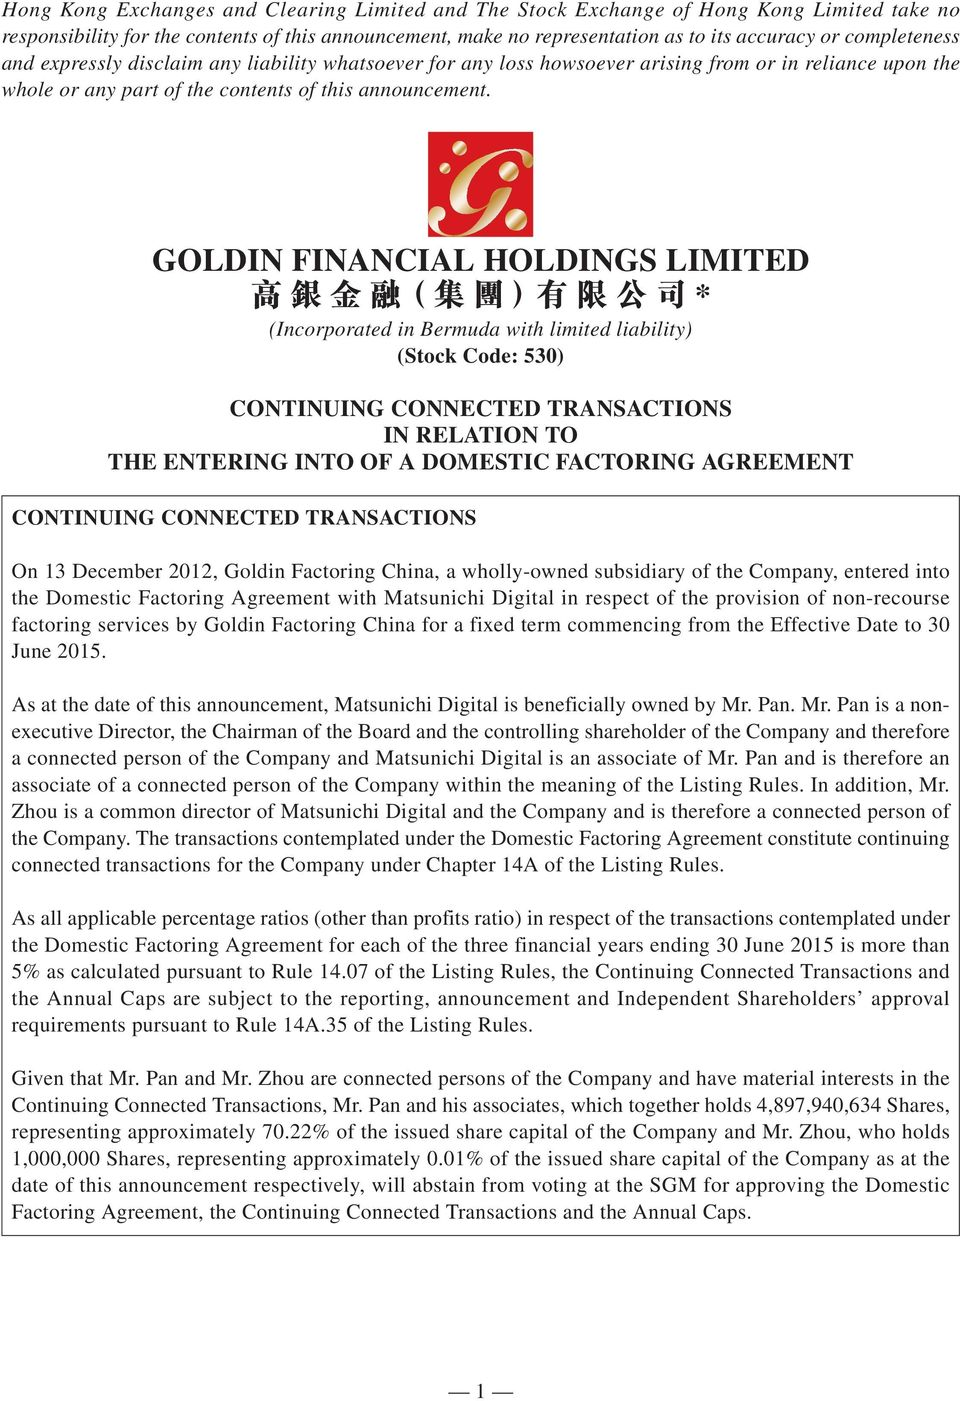 GOLDIN FINANCIAL HOLDINGS LIMITED * (Incorporated in Bermuda with limited liability) (Stock Code: 530) CONTINUING CONNECTED TRANSACTIONS IN RELATION TO THE ENTERING INTO OF A DOMESTIC FACTORING